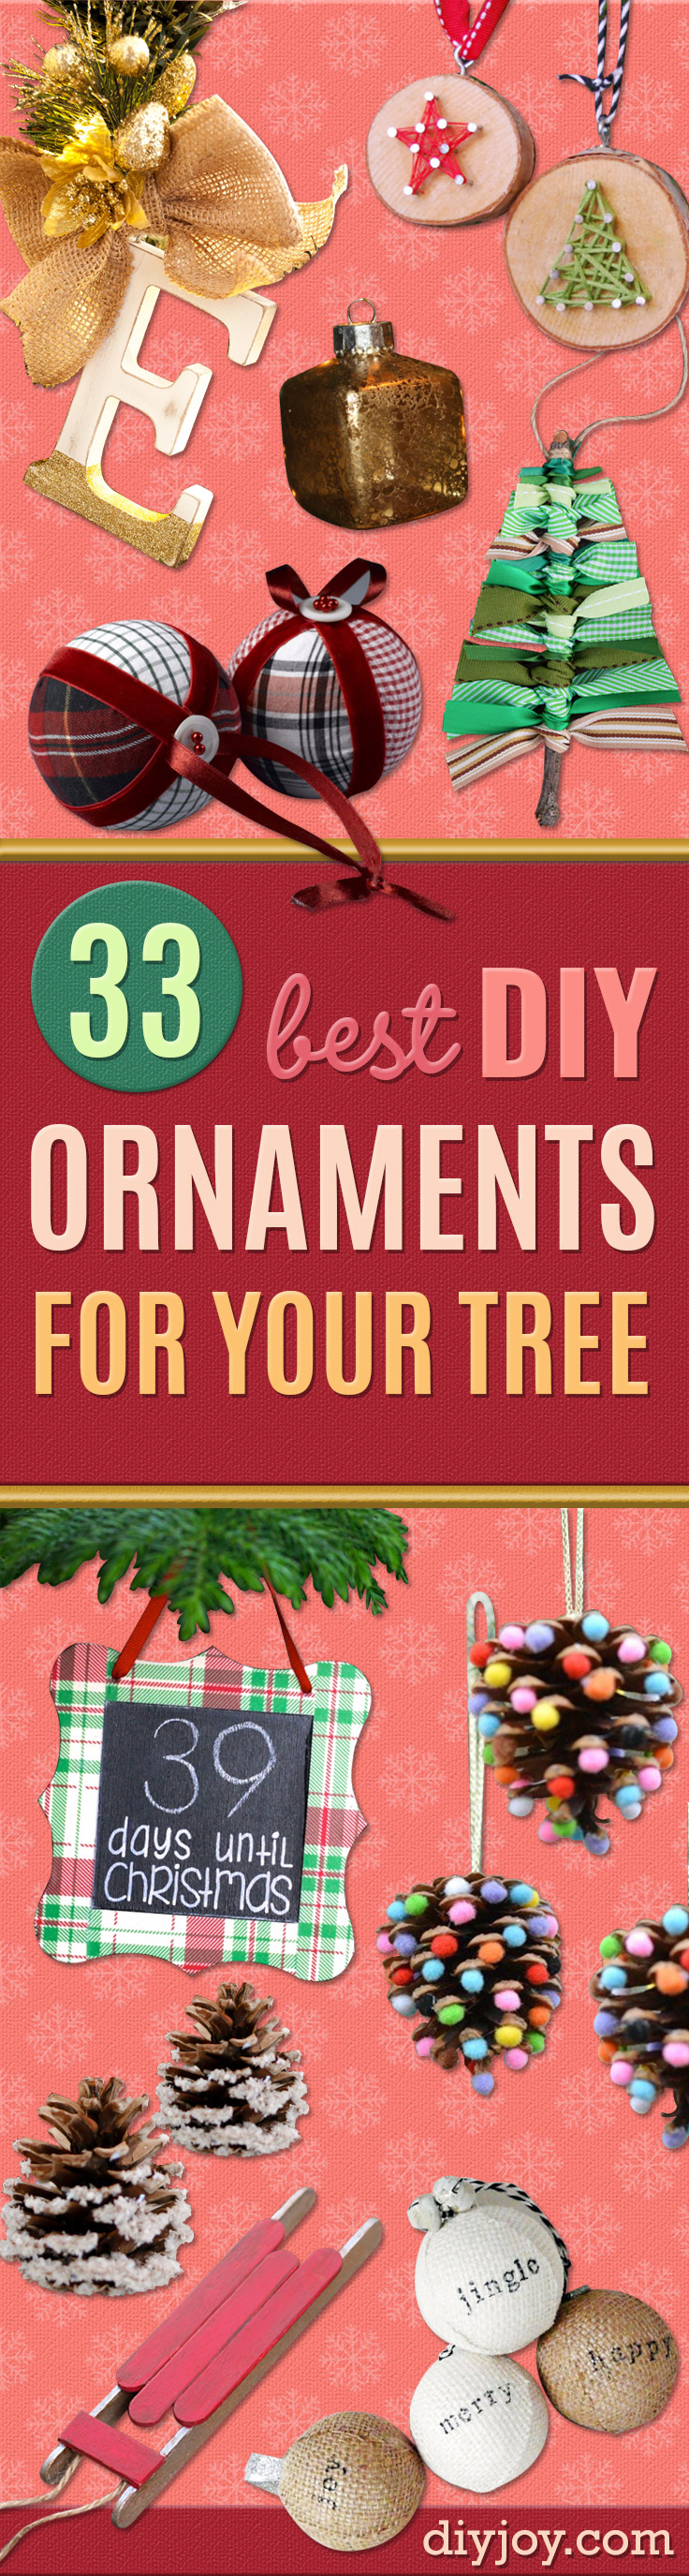 Best DIY Ornaments for Your Tree - Best DIY Ornament Ideas for Your Christmas Tree - Cool Handmade Ornaments, DIY Decorating Ideas and Ornament Tutorials - Creative Ways To Decorate Trees on A Budget - Cheap Rustic Decor, Easy Step by Step Tutorials - Holiday Crafts for Kids and Gifts To Make For Friends and Family http://diyjoy.com/diy-ideas-christmas-tree